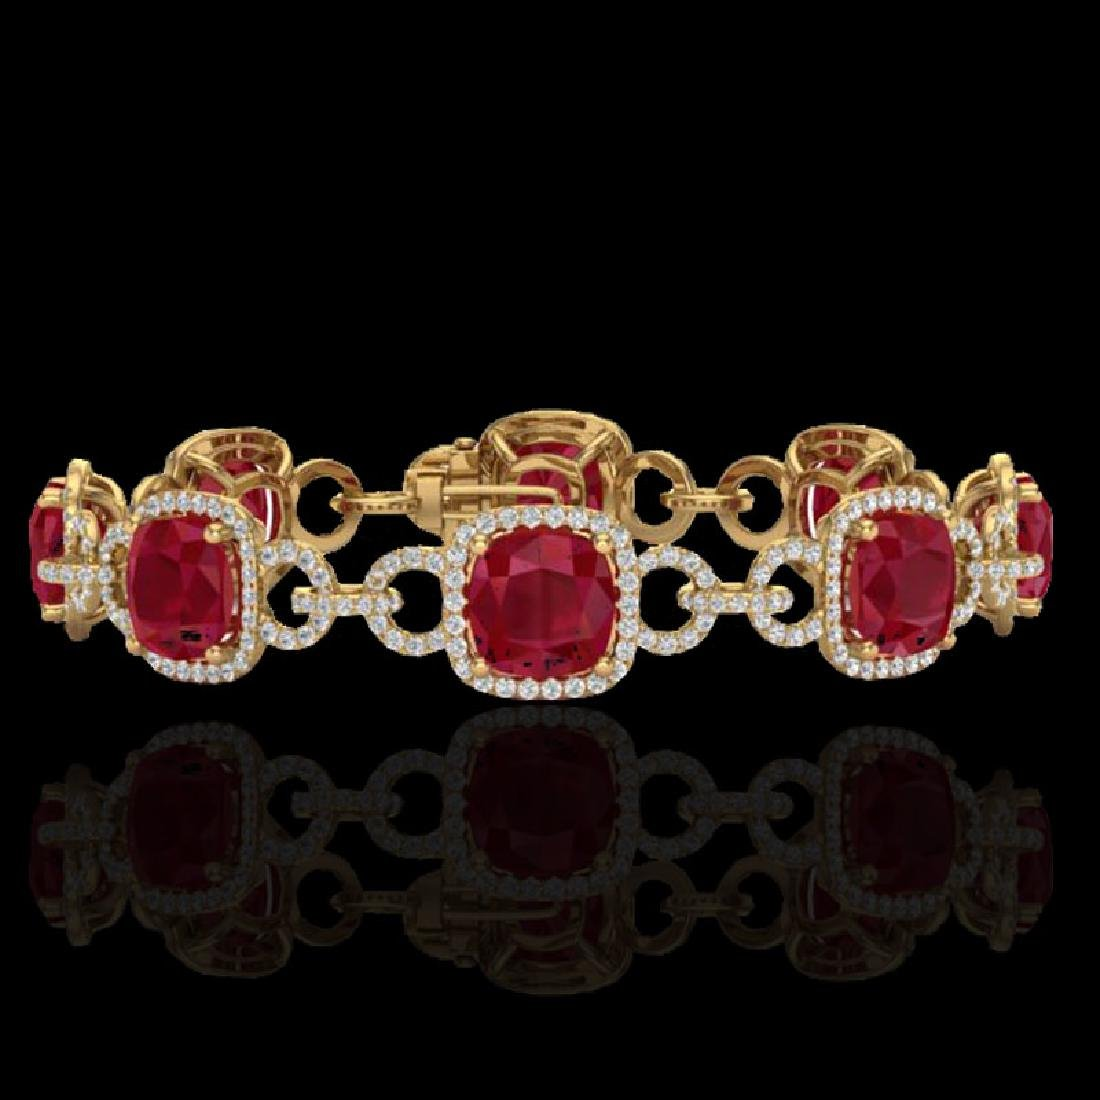 25 CTW Ruby & Micro VS/SI Diamond Bracelet 14K Yellow